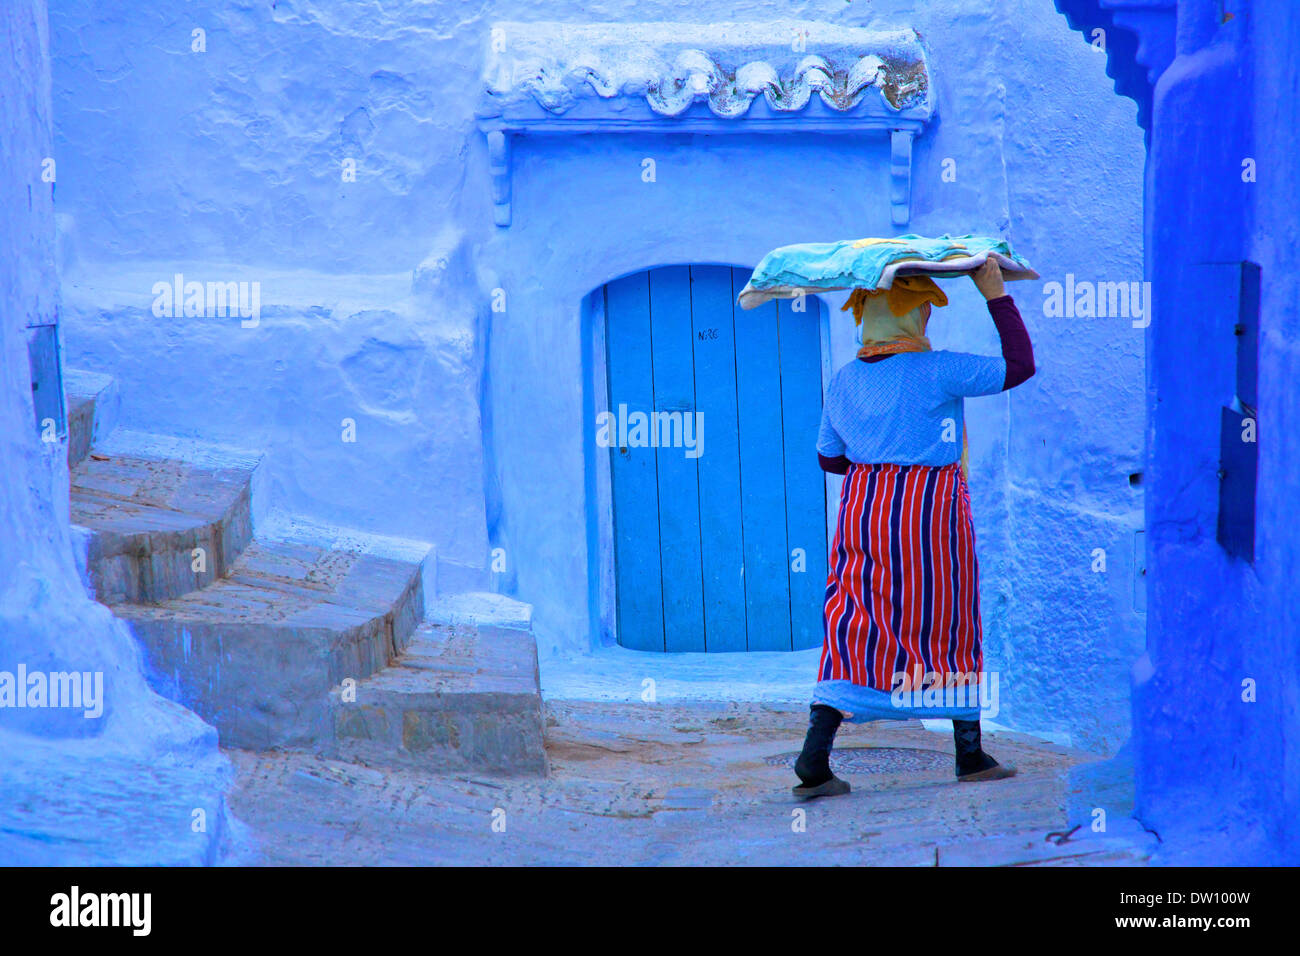 Woman In Traditional Clothing Carrying A Tray of Bread Dough, Chefchaouen, Morocco, North Africa - Stock Image